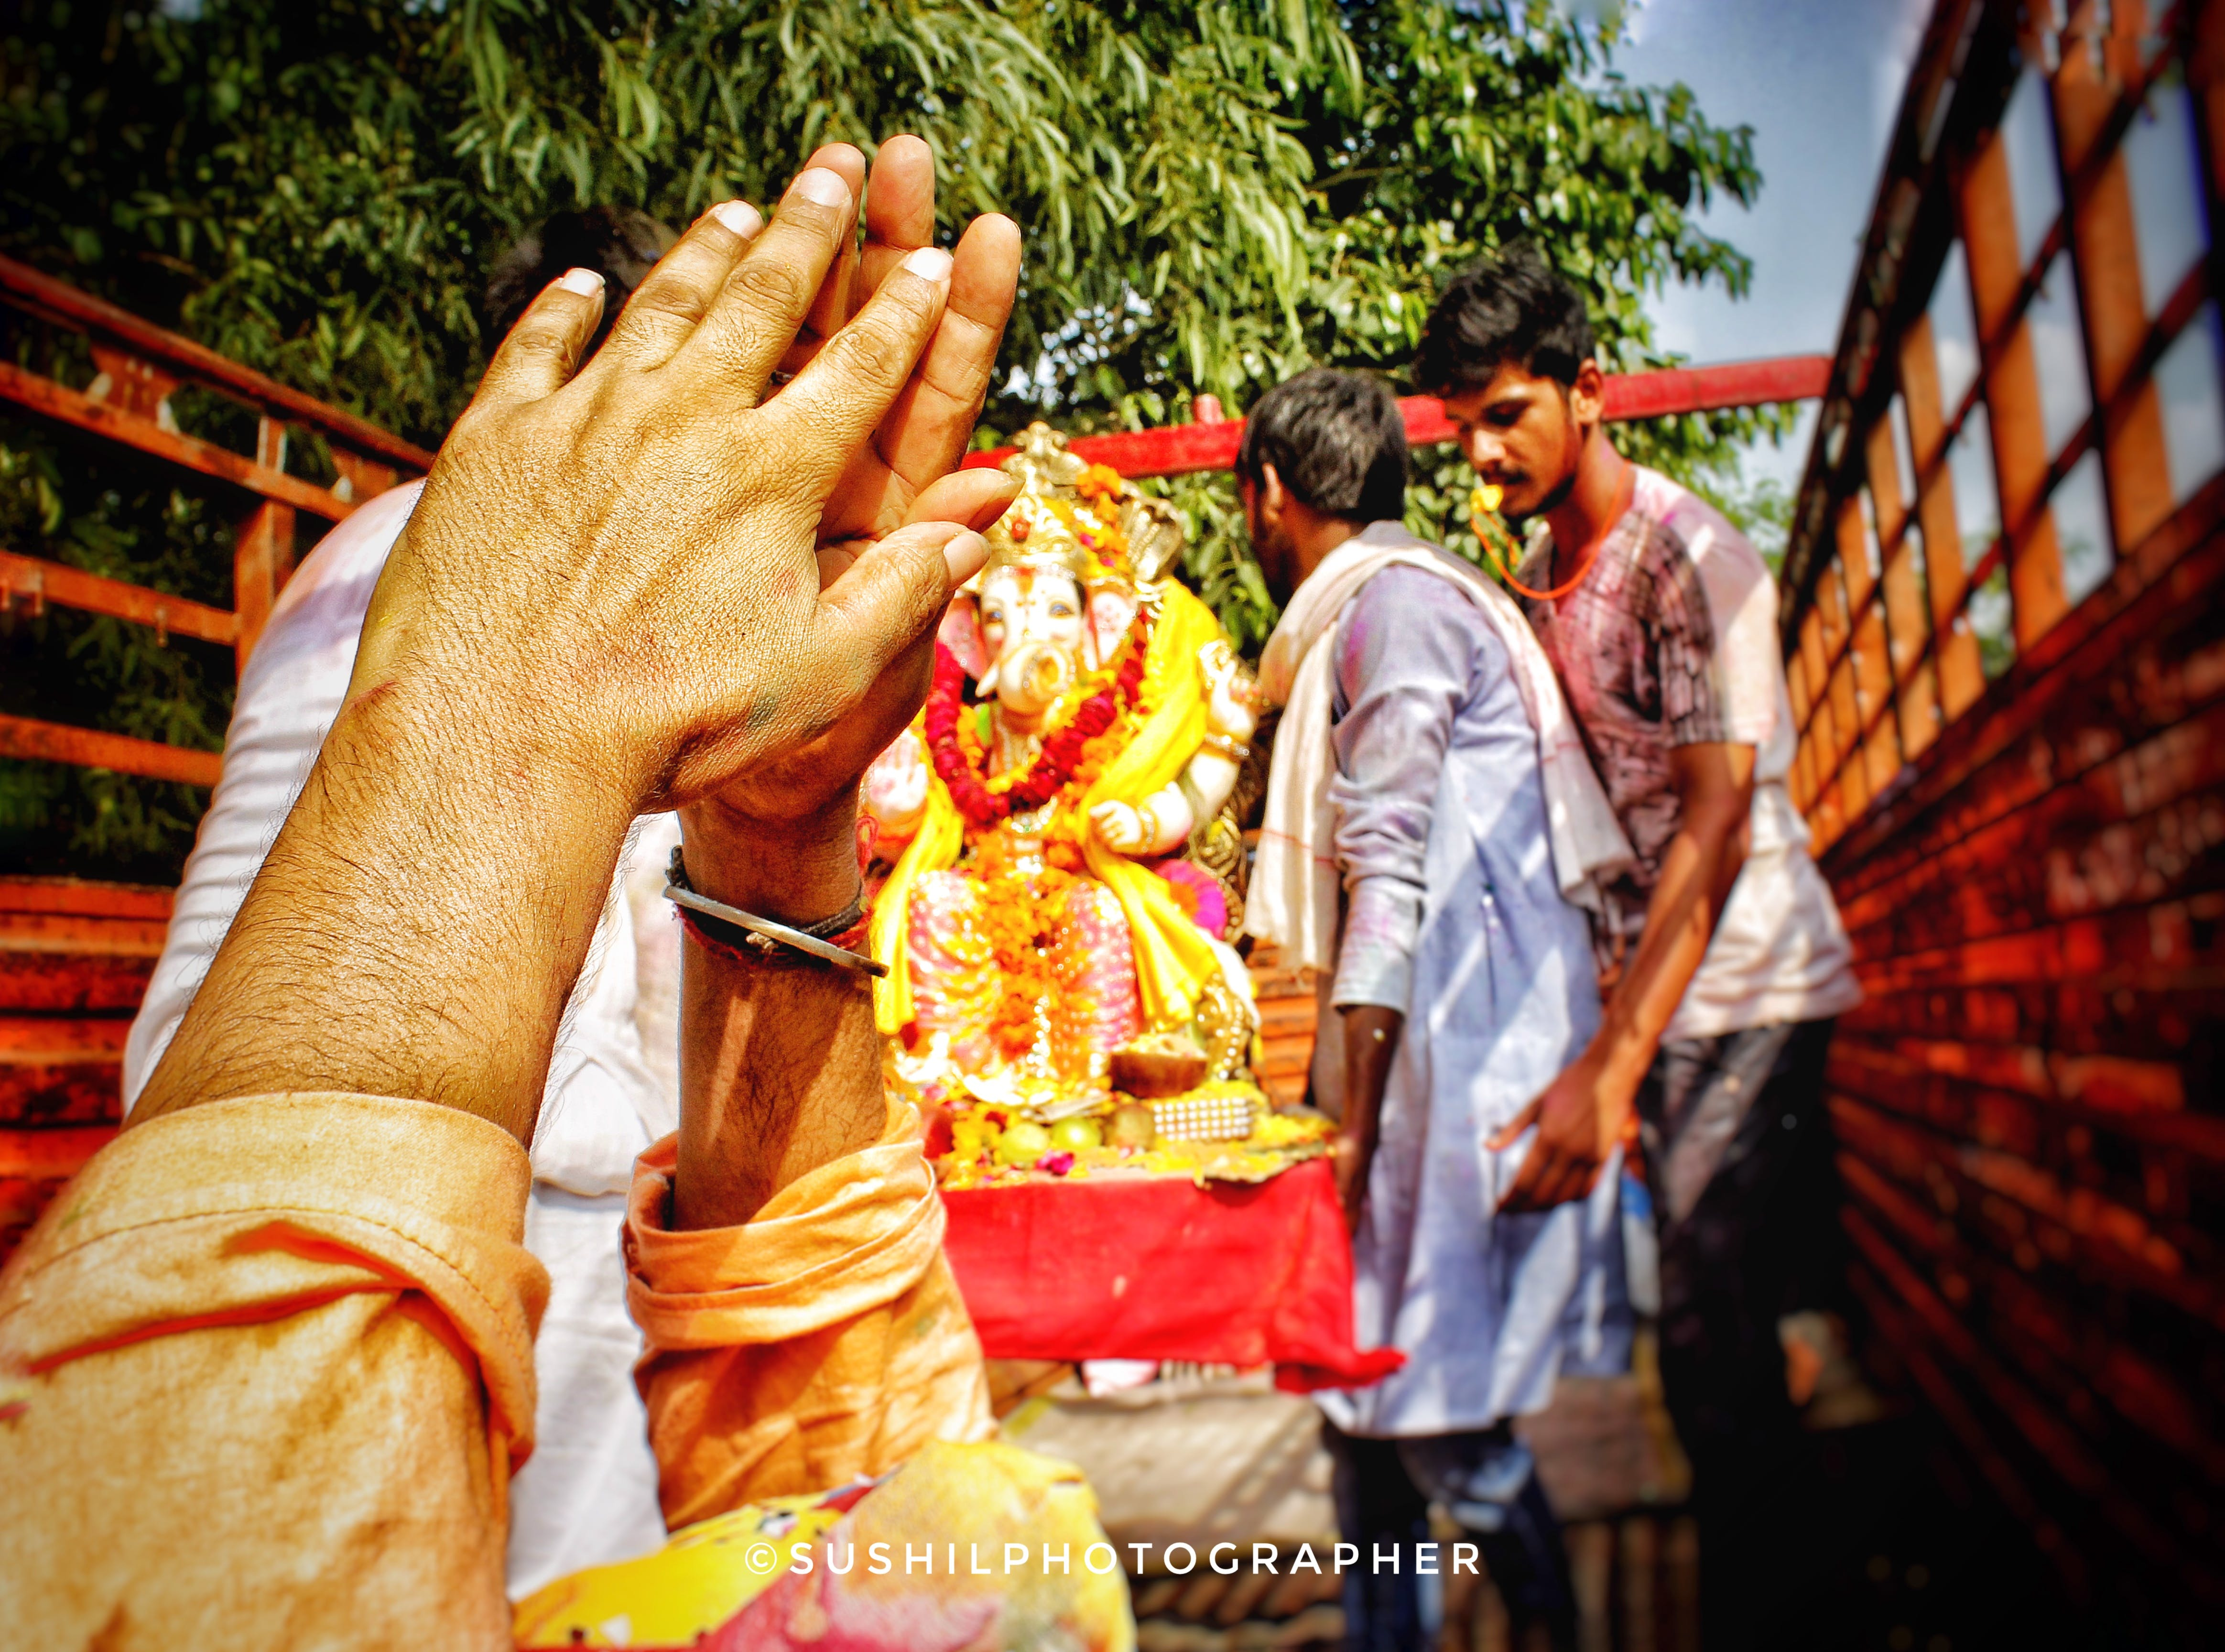 Free stock photo of The last final good by of ganpati